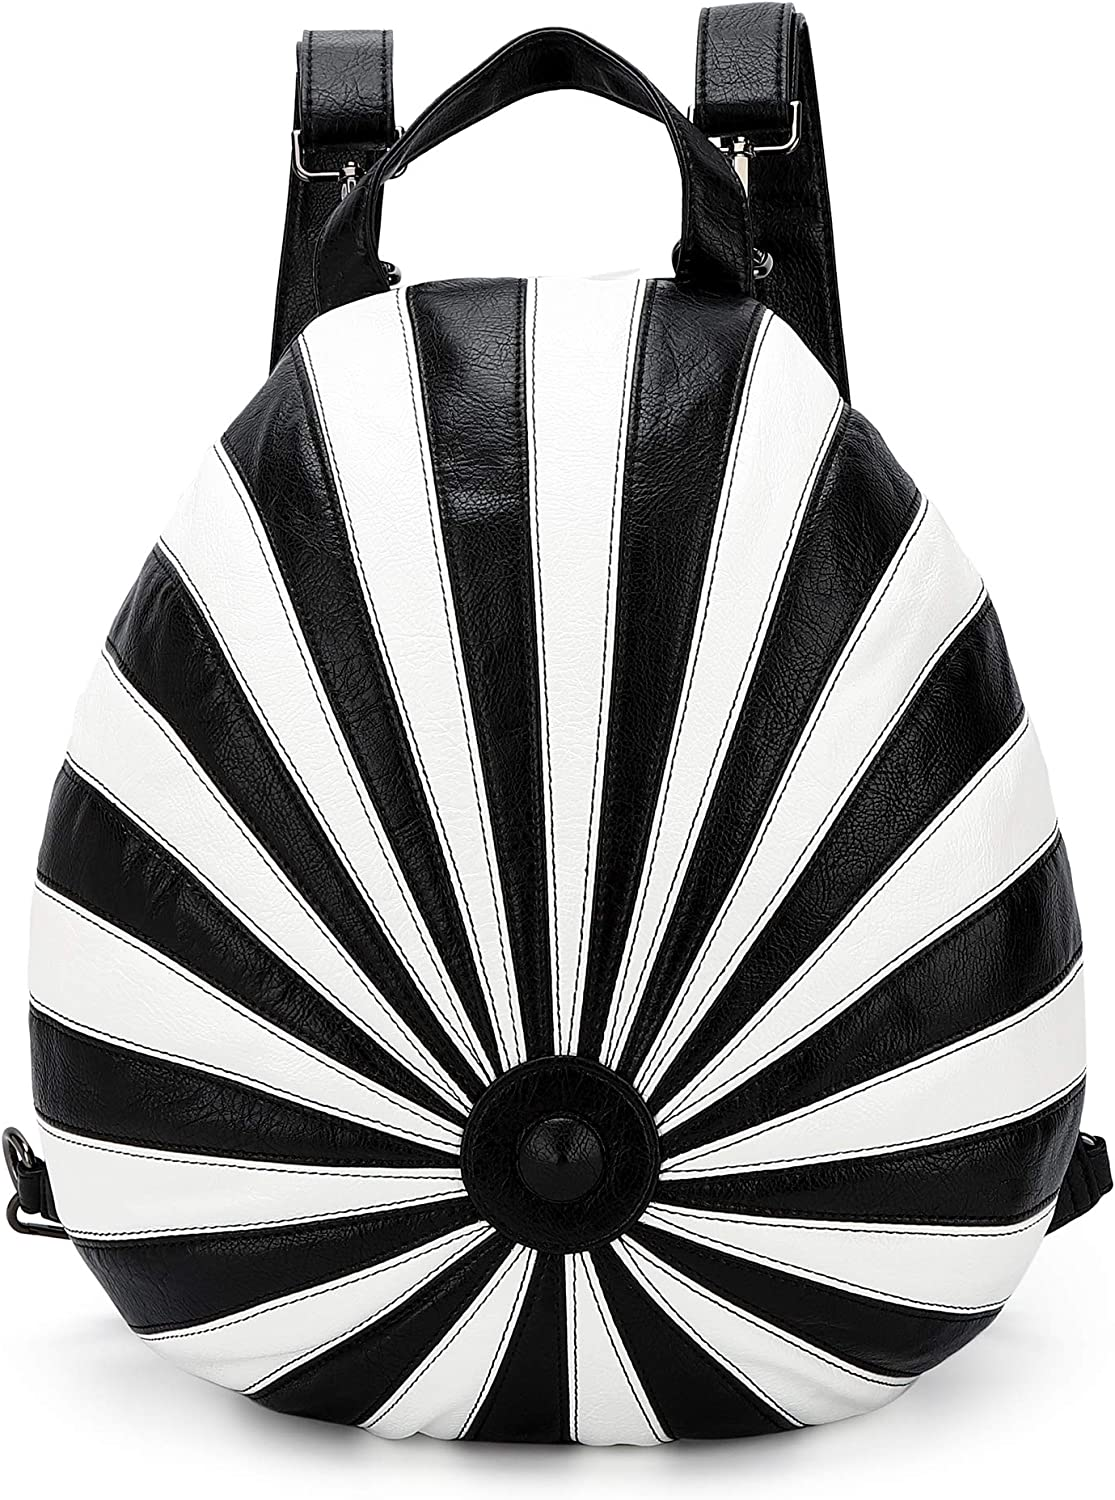 Women Backpack Purse Water Sale special price resistant Rucksack Nylon L Free shipping / New Anti-theft